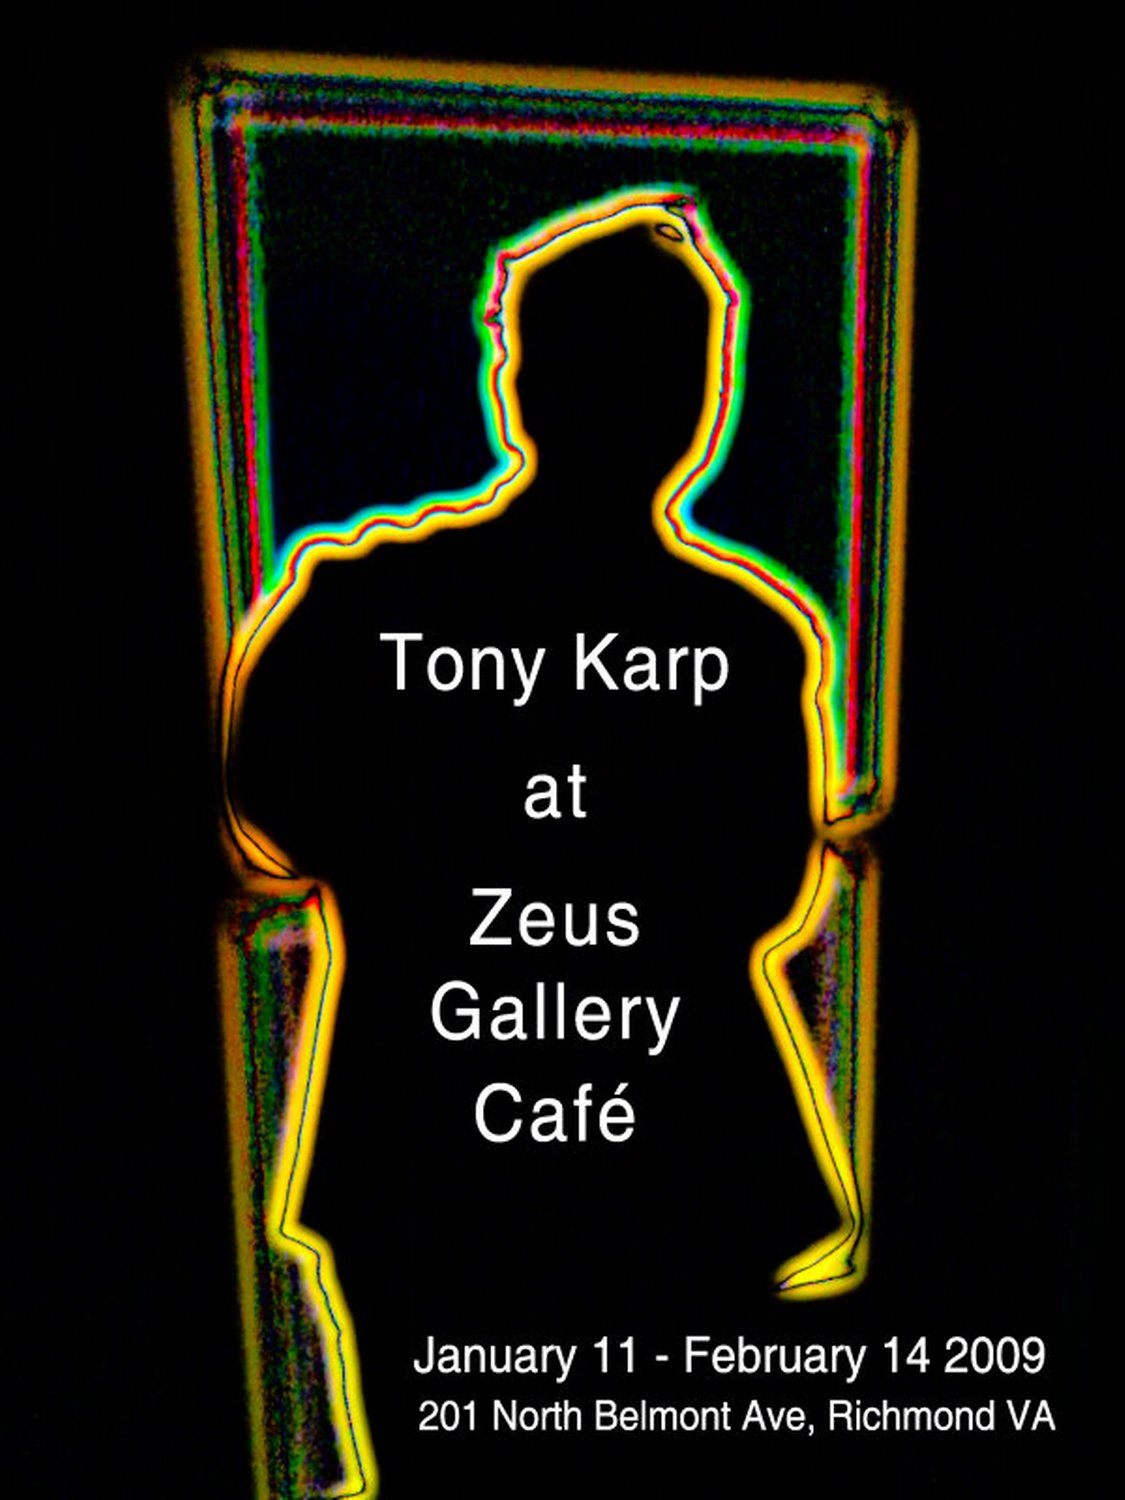 - Seamless integration - at the Zeus Gallery - - art  - photography - by Tony Karp